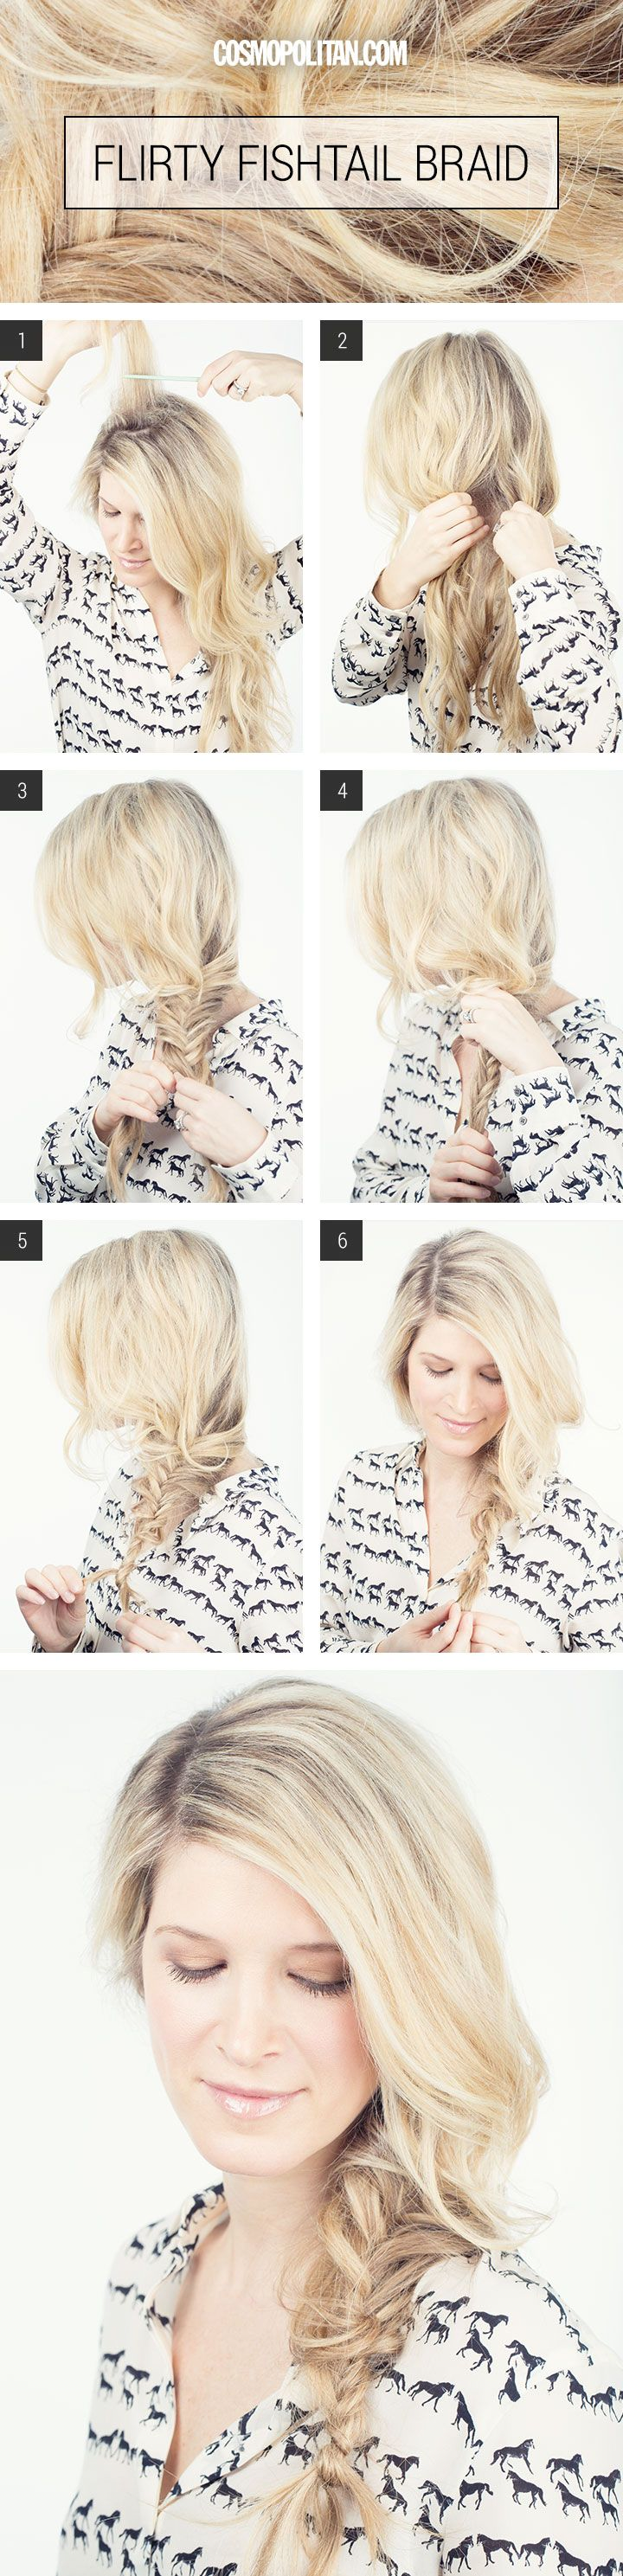 How to Make A Fishtail Braid - Sexy and Sultry Braided Hairstyles for Long Hair